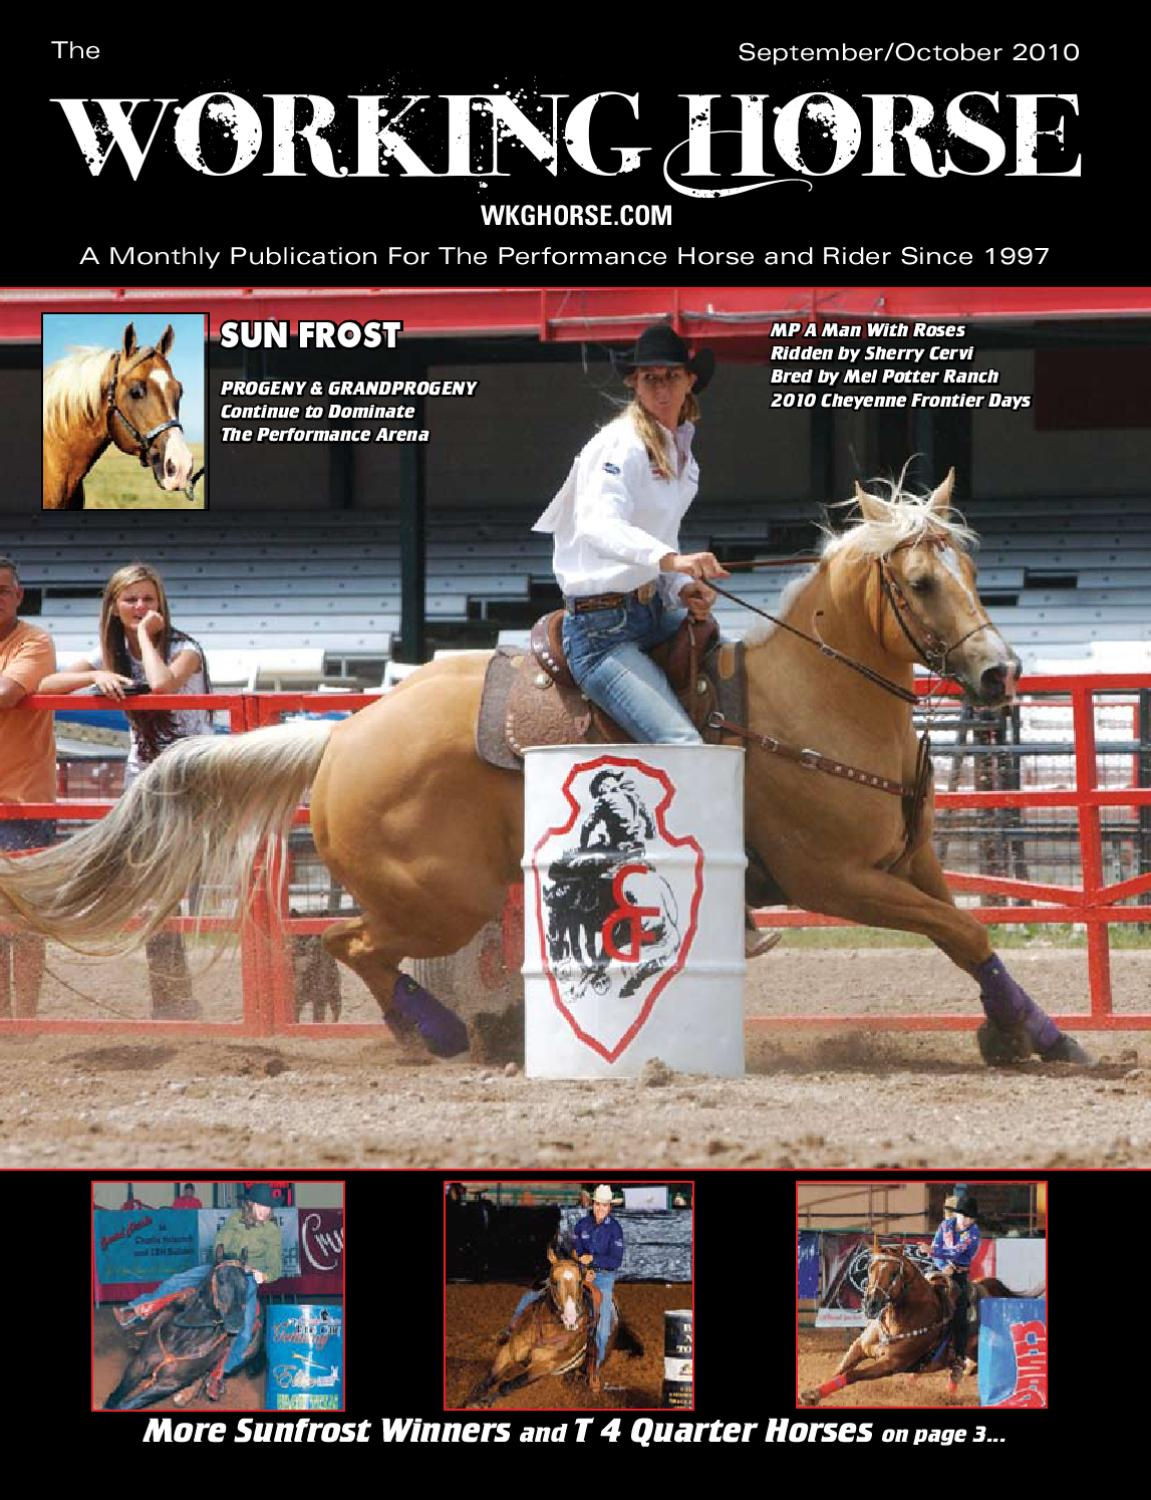 The Working Horse, September/October 2010 by EDJE - issuu